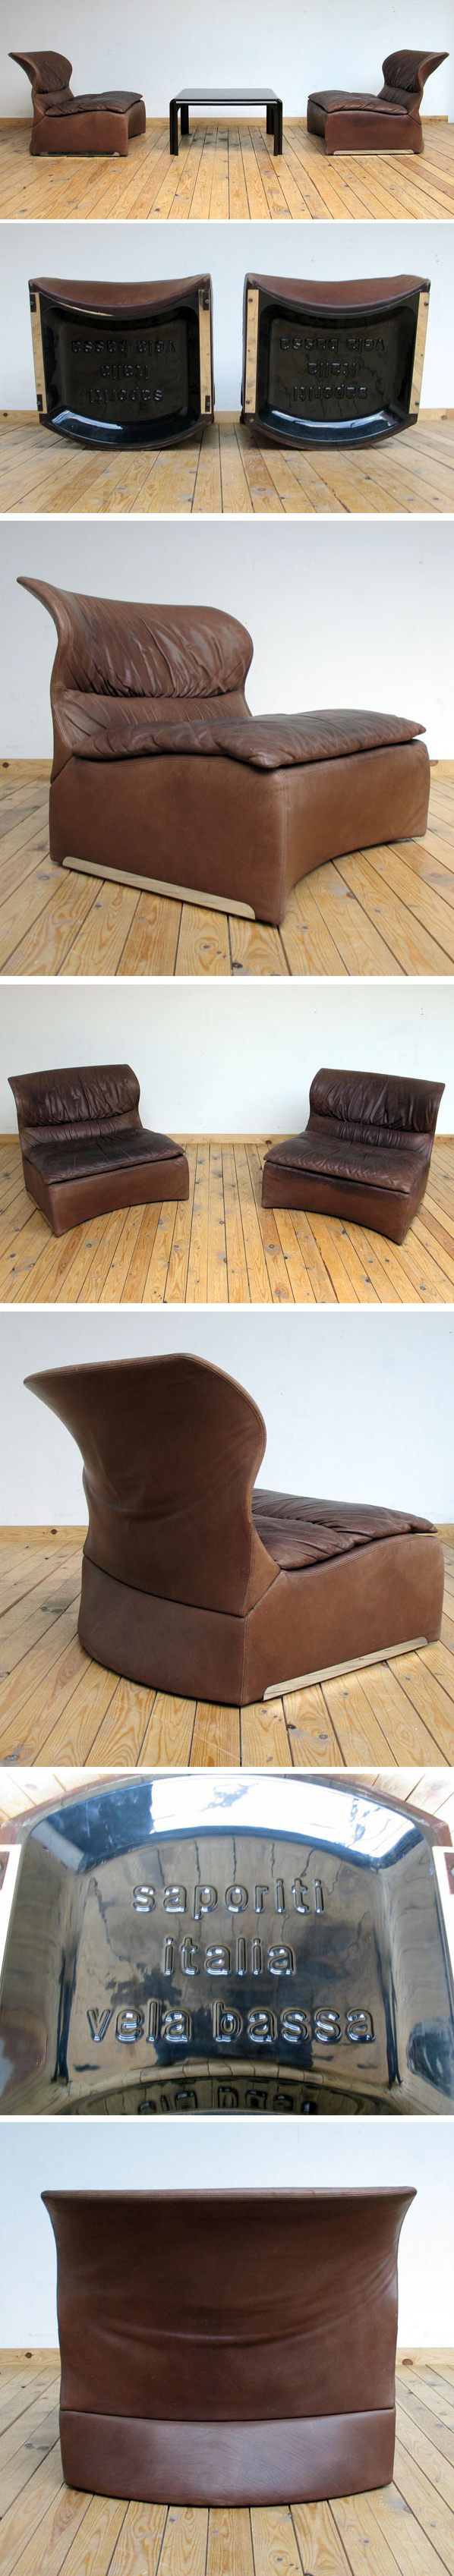 Giovanni Offredi 2 leather lounge chairs Vela Bassa Saporiti Large